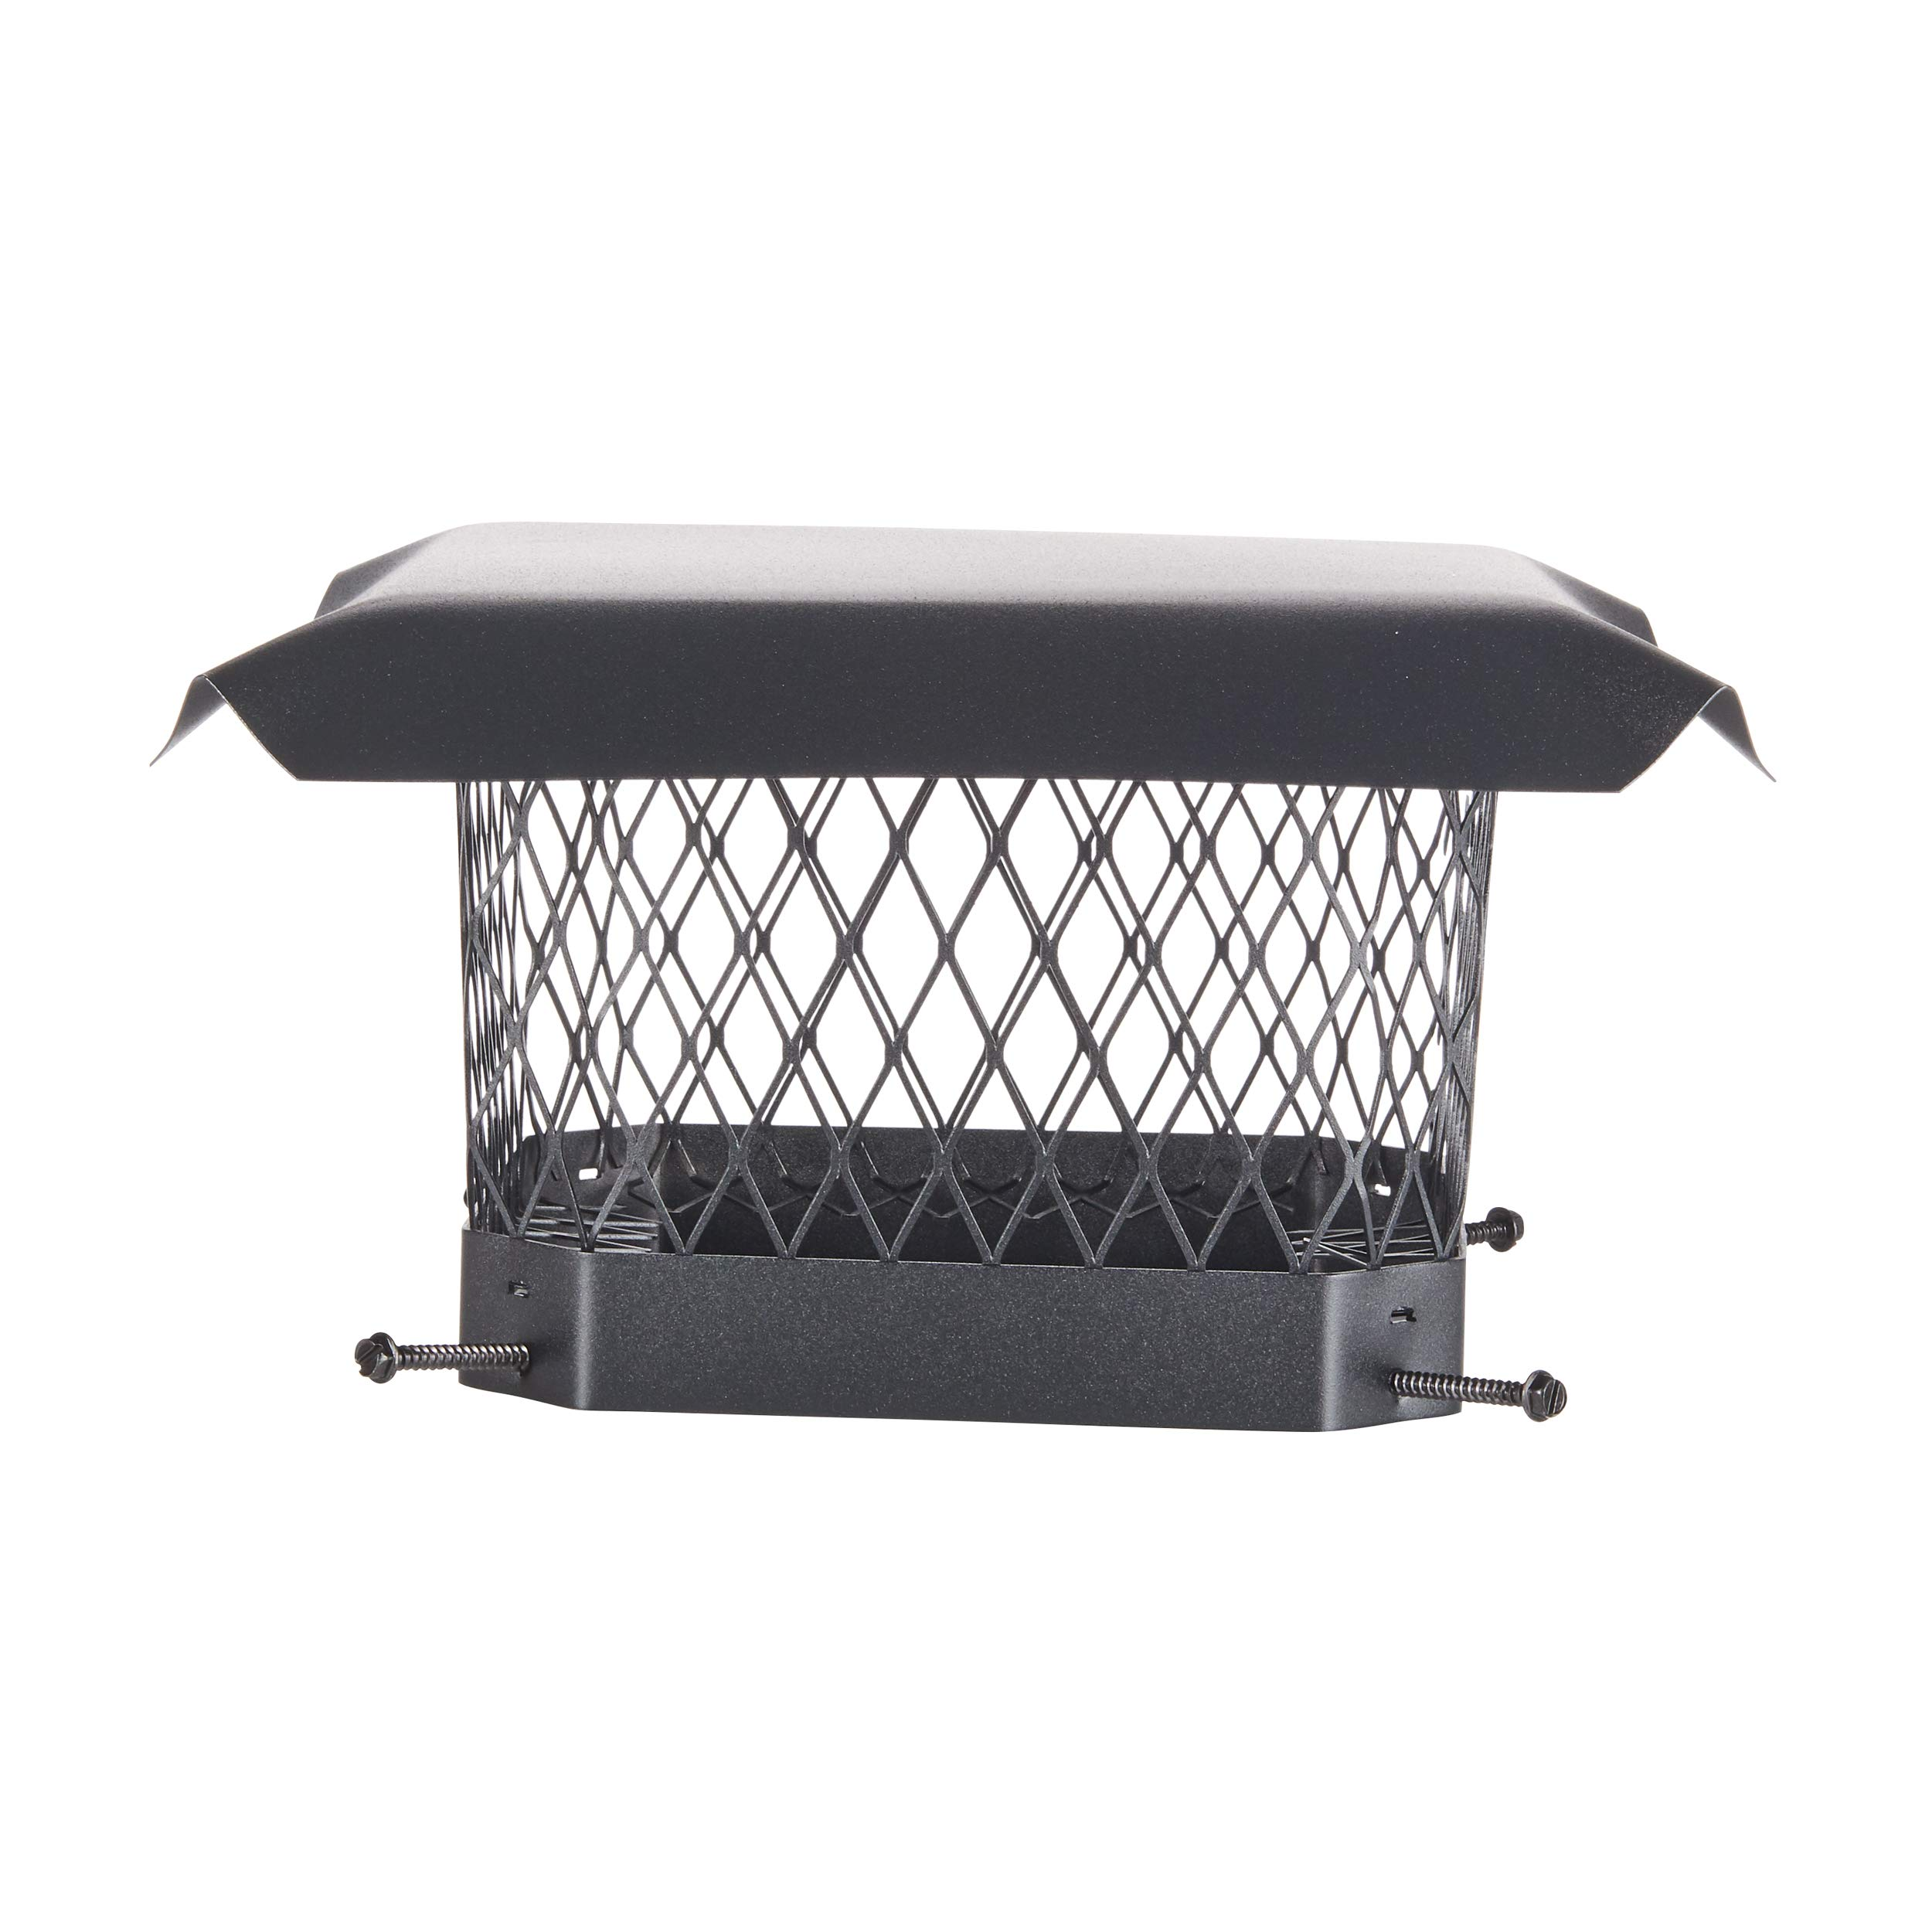 HY-C SC99 Shelter Bolt On Single Flue Chimney Cover, Mesh Size 3/4'', Fits Outside Existing Clay Flue Tile Dimensions 9'' x 9'', Black Galvanized Steel by HY-C